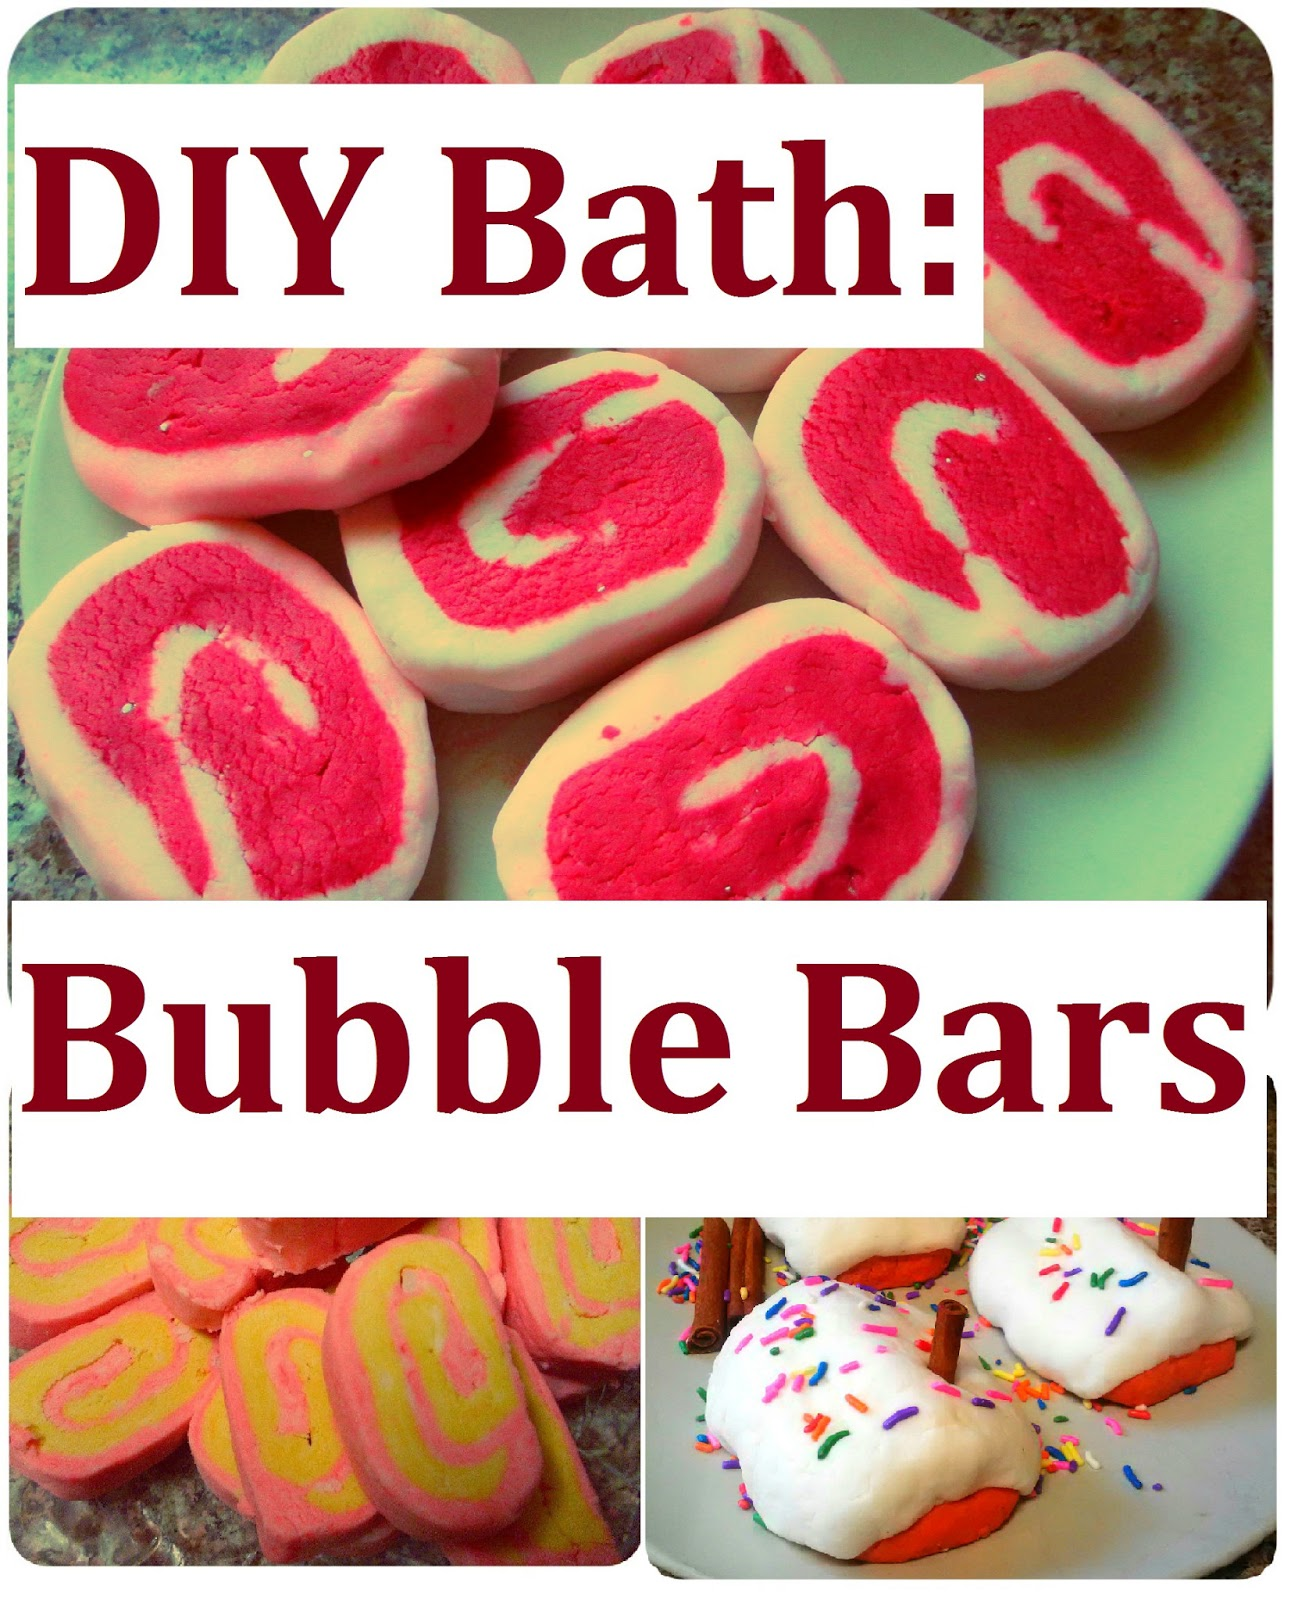 Maria Sself Chekmarev Diy Bubble Bars Recipe How To Make